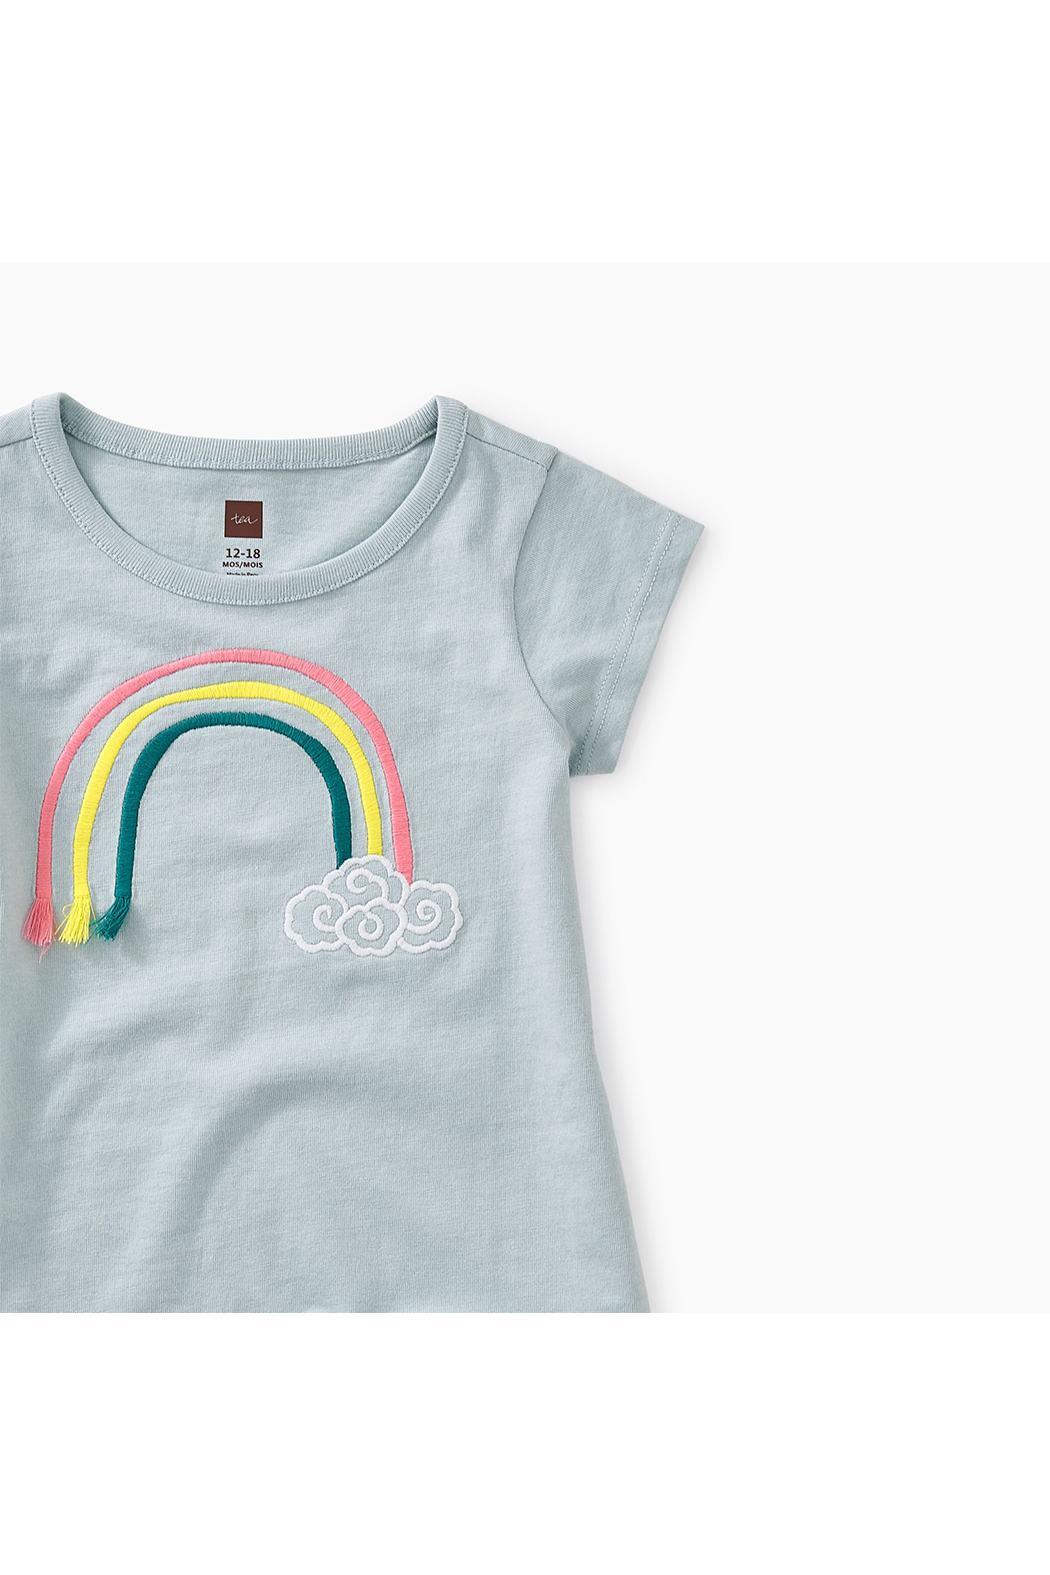 Tea Collection 3D Rainbow Baby Graphic Tee - Front Full Image